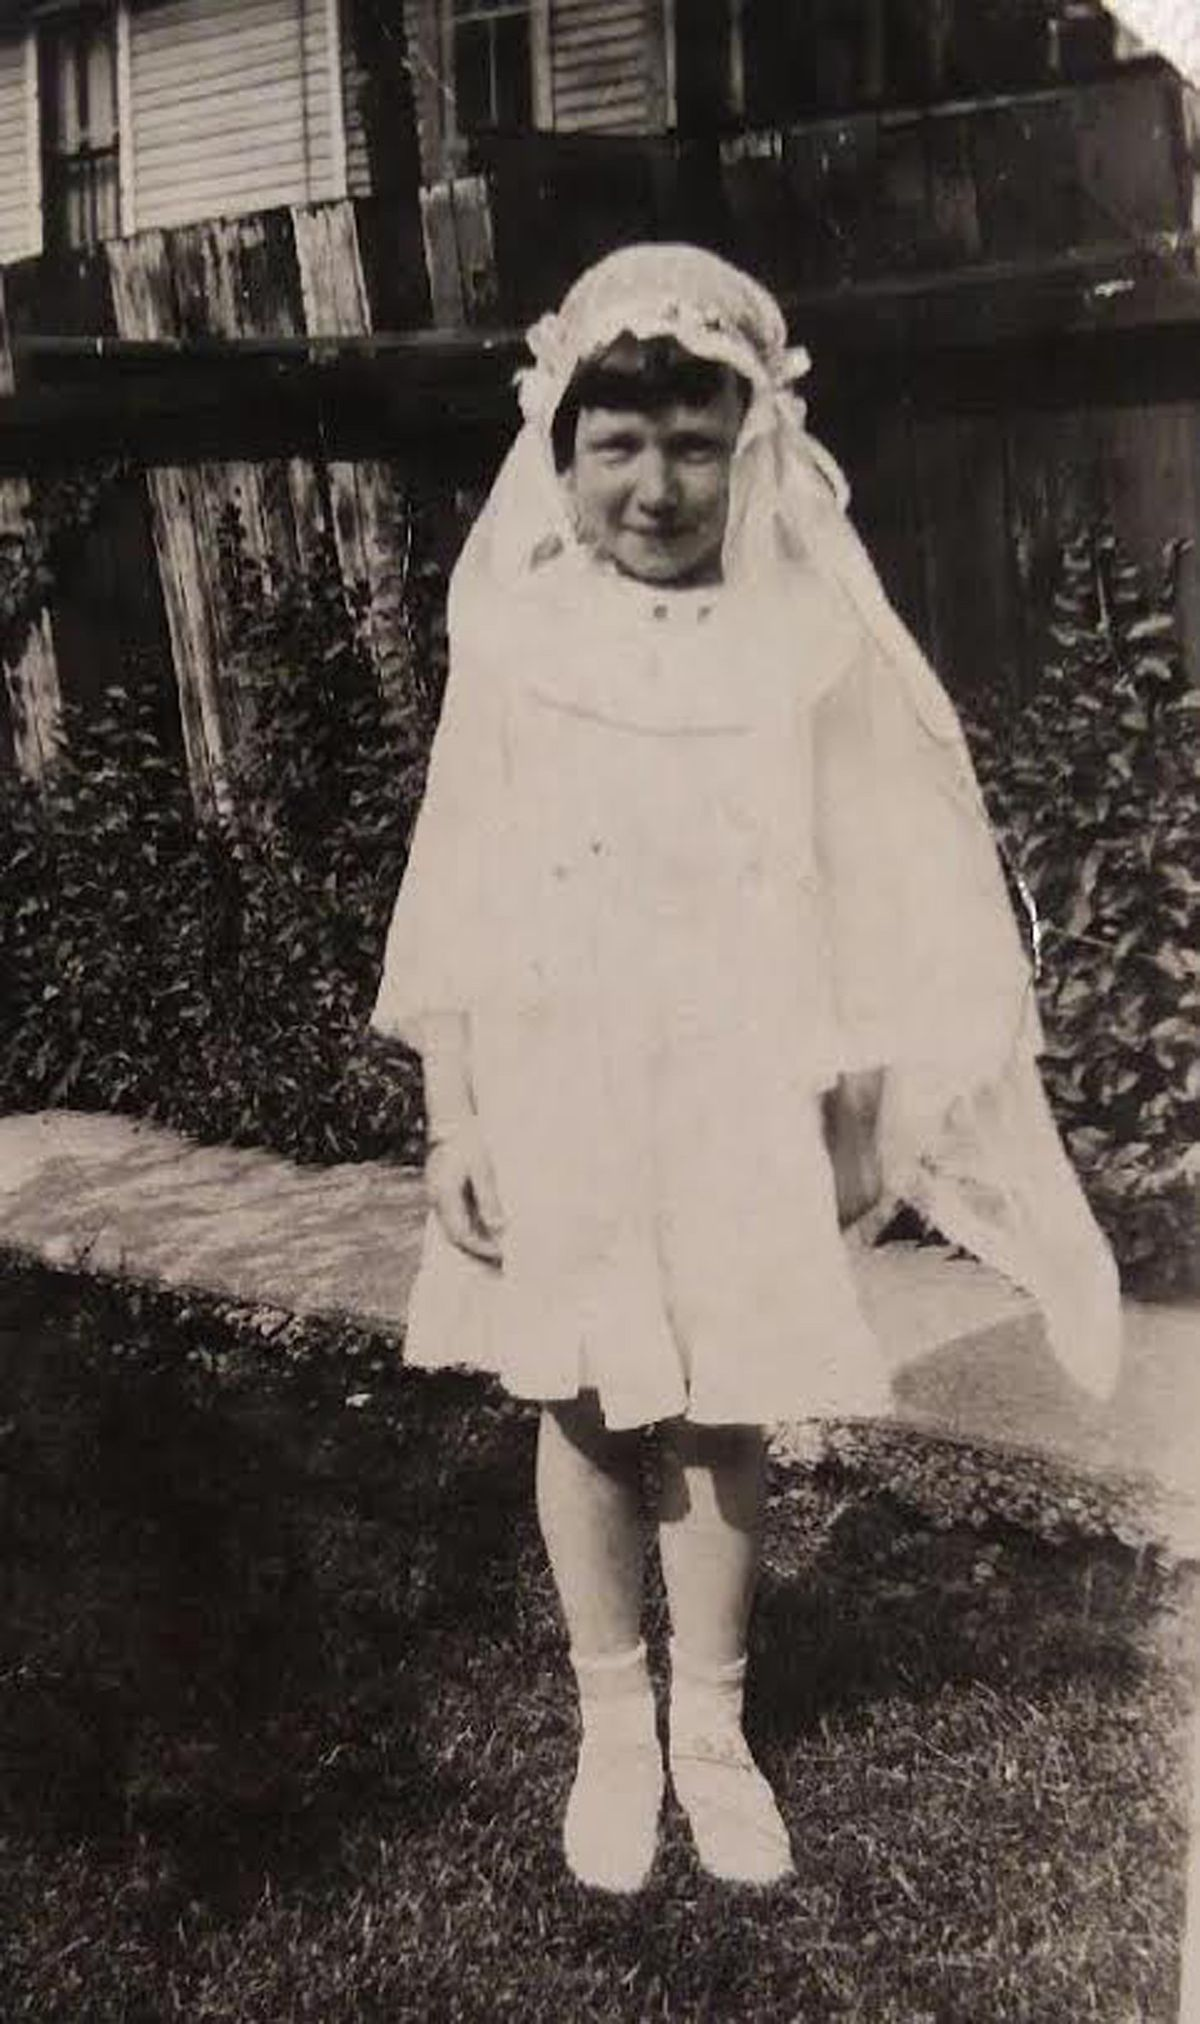 Georgia Sheehan at her first Communion at the church where she was baptized and buried, St. Gabe's in Canaryville.